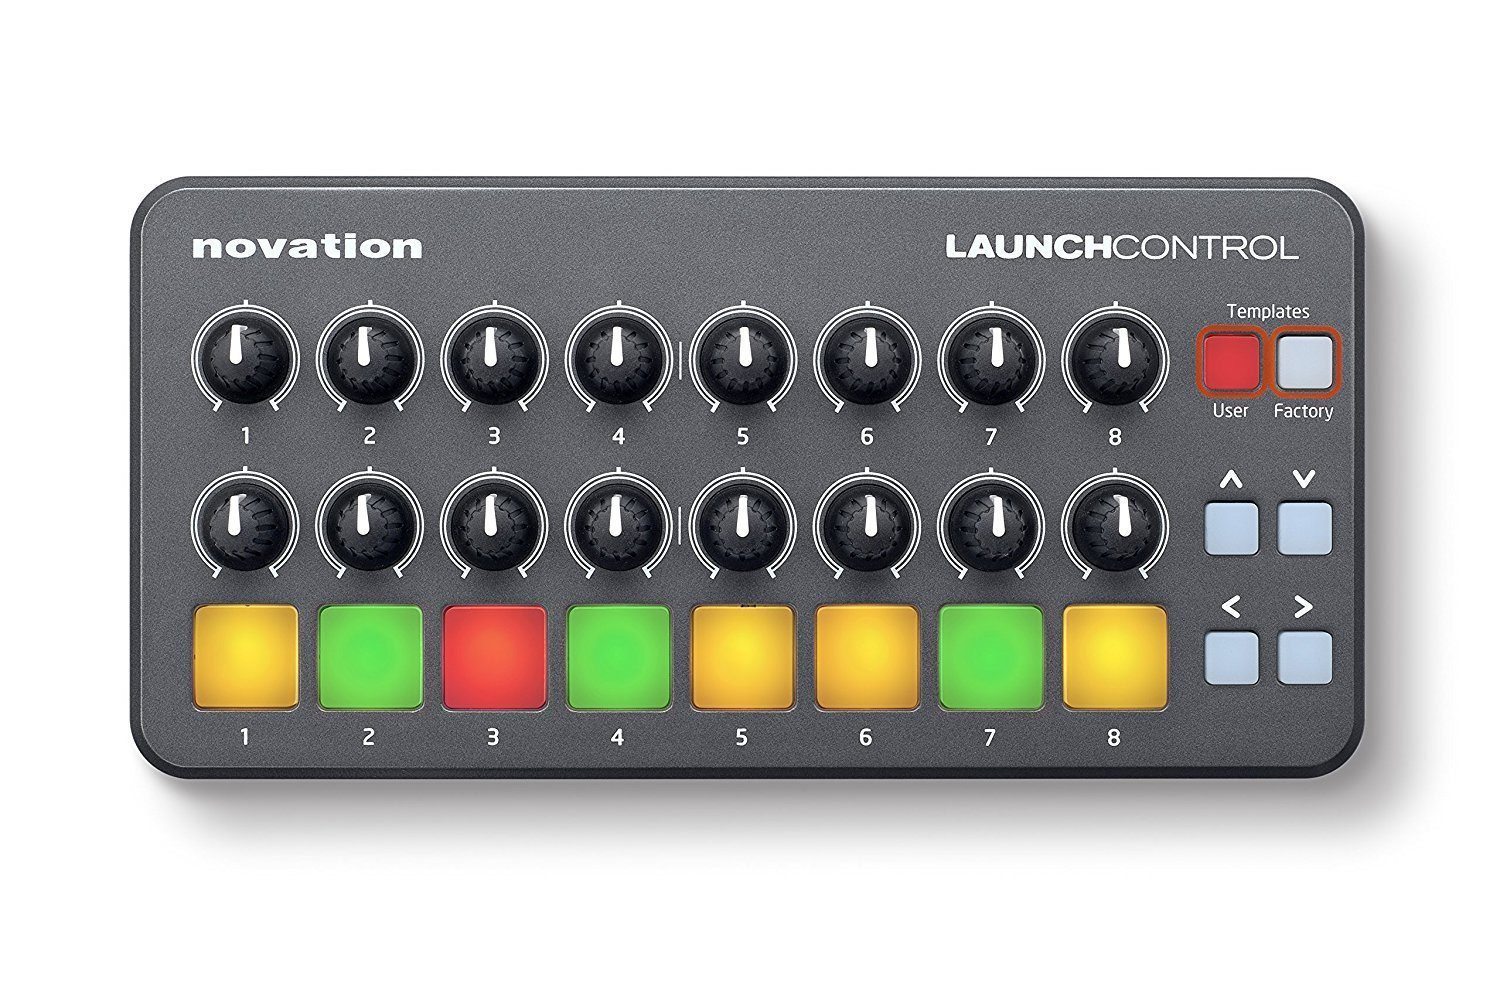 novation launch control portable midi controller rockbottom music. Black Bedroom Furniture Sets. Home Design Ideas